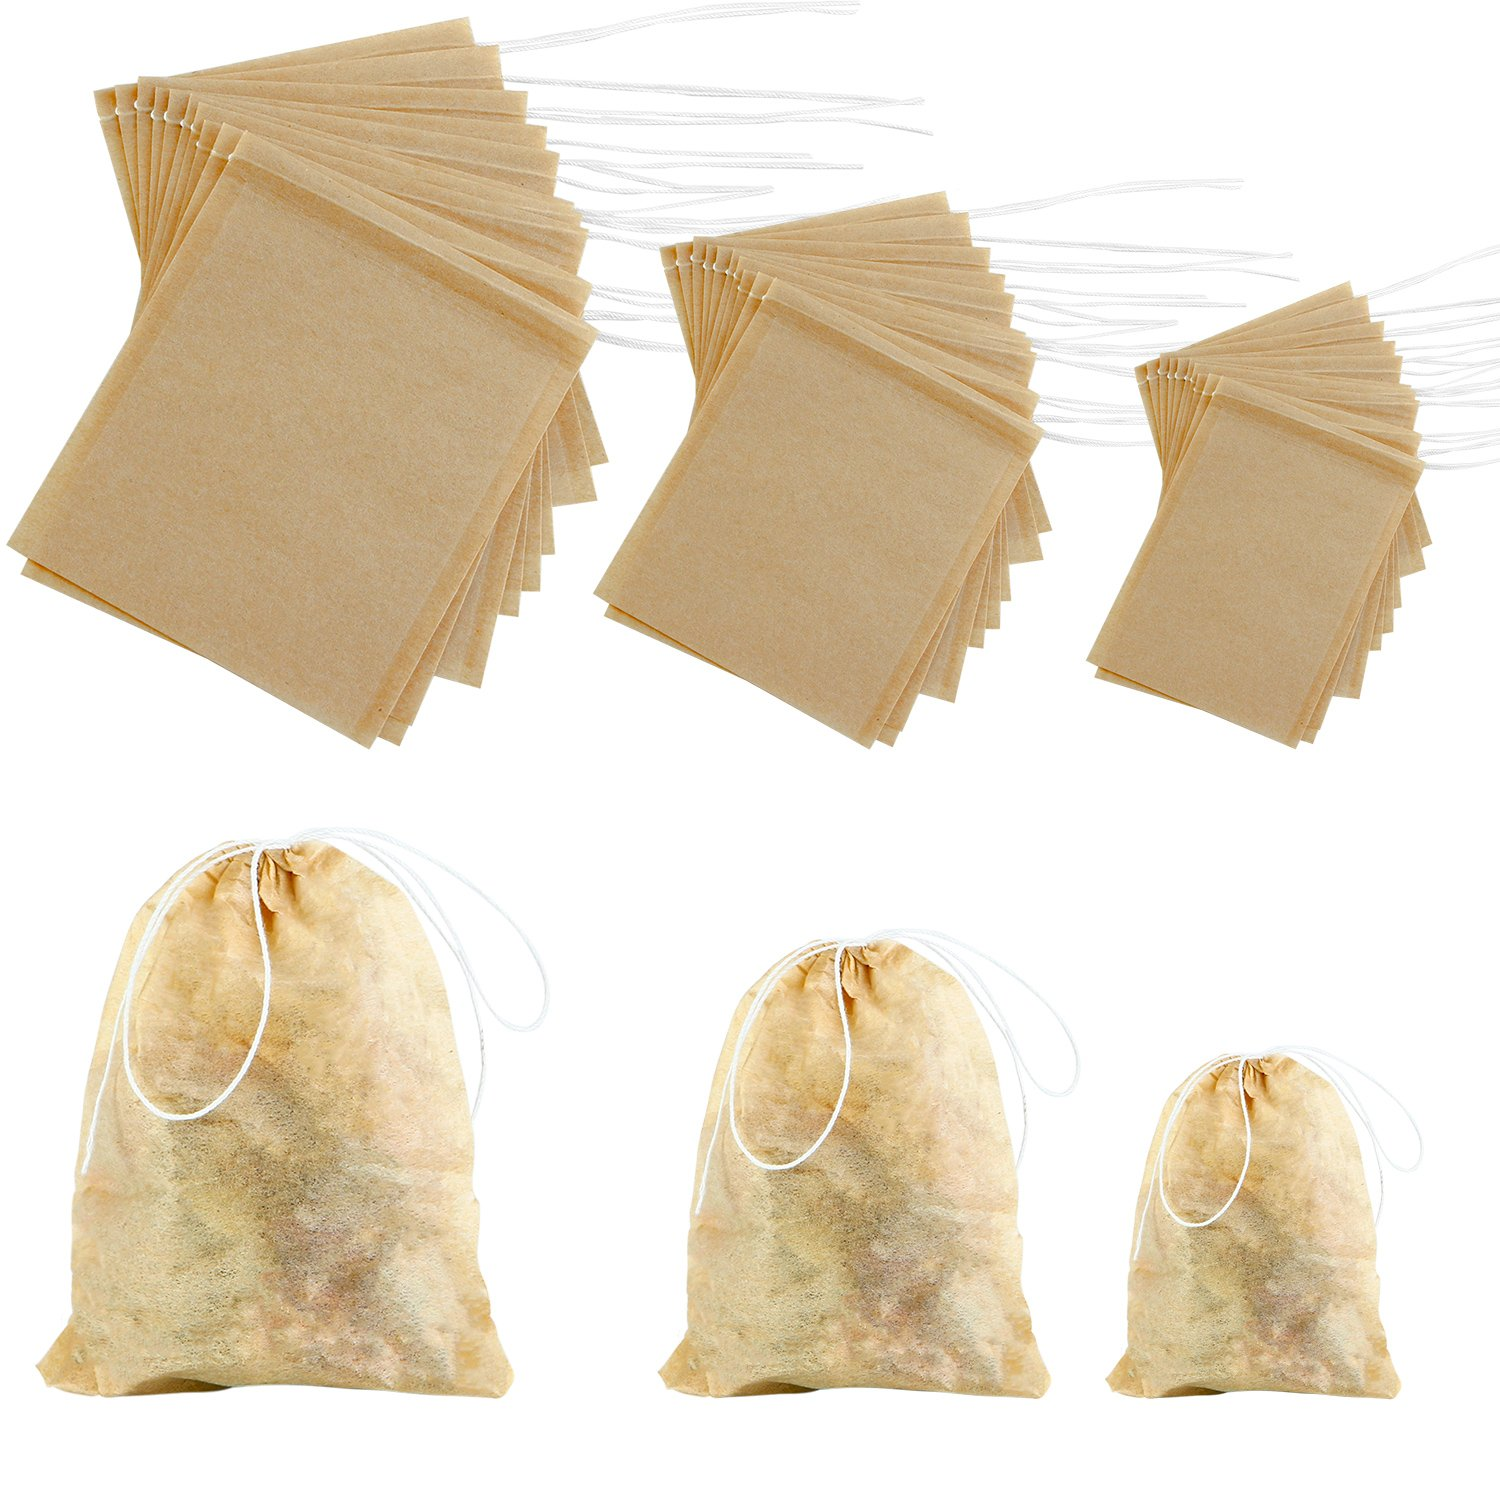 Coobey 300 Pack Tea Filter Bags Disposable Tea Infuser Drawstring Teabags Natural Empty Tea Bag for Loose Leaf Herbs Teas (Natural Color, Mixed Sizes)